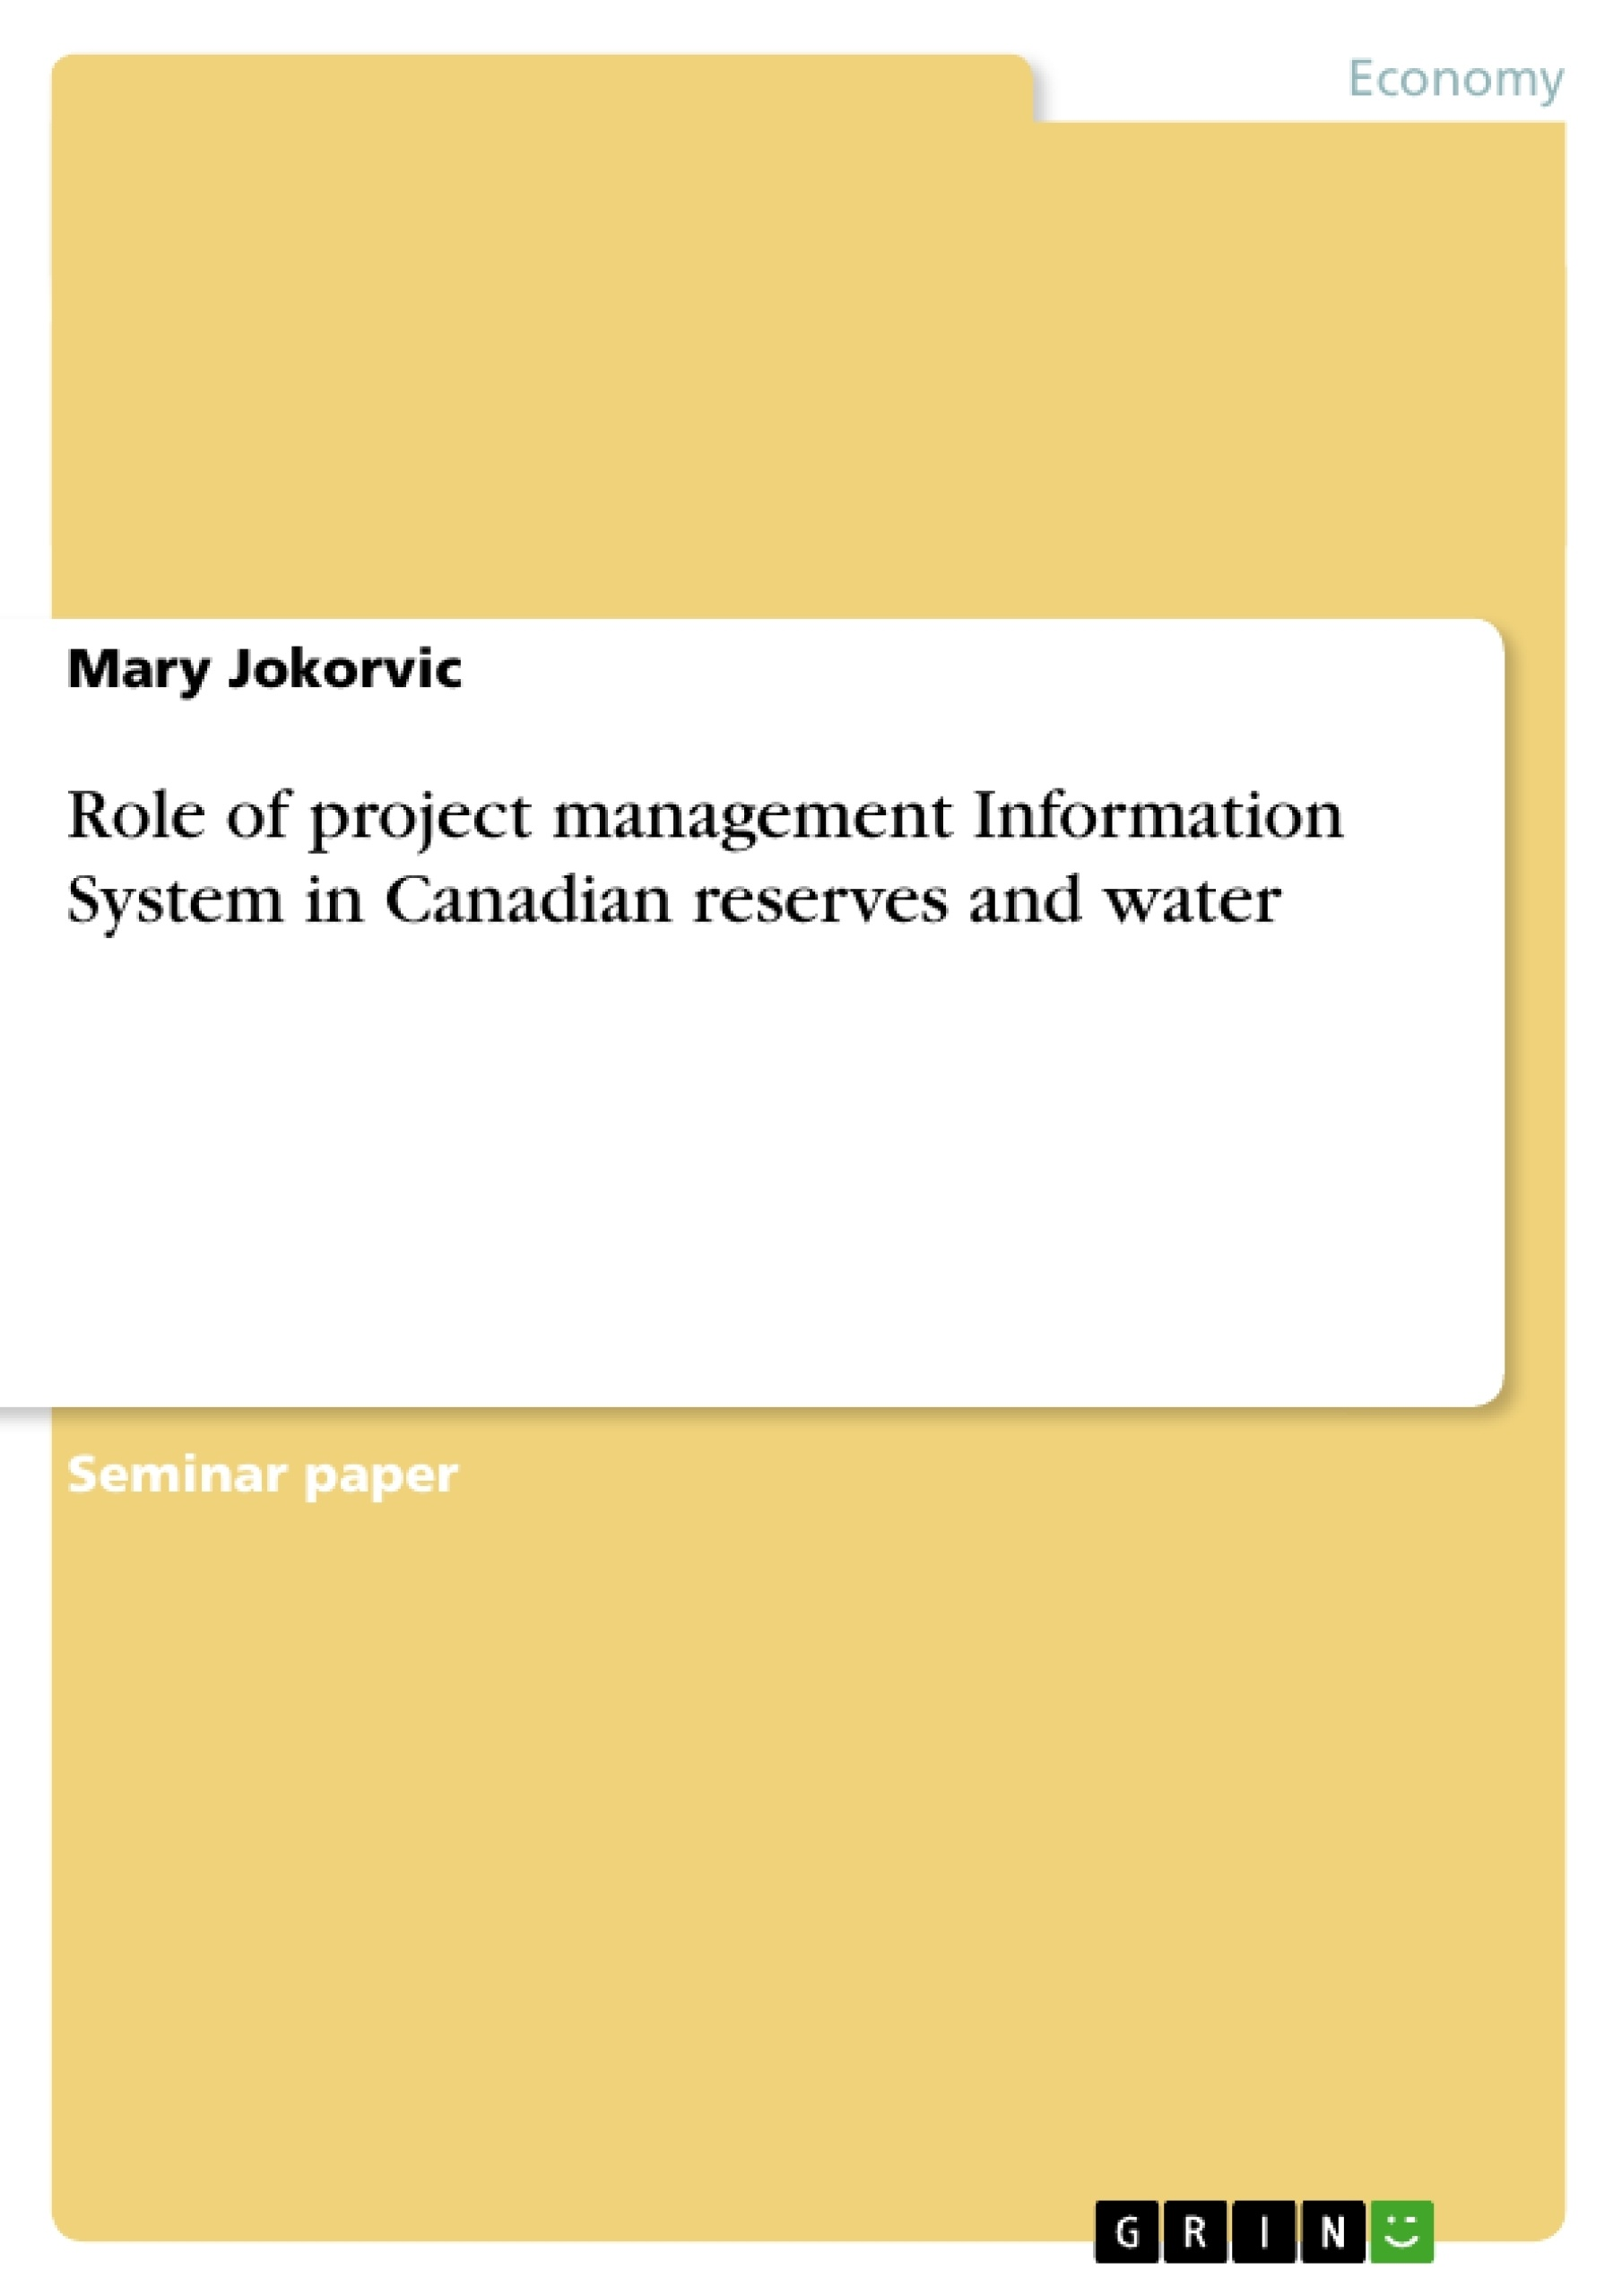 Title: Role of project management Information System in Canadian reserves and water